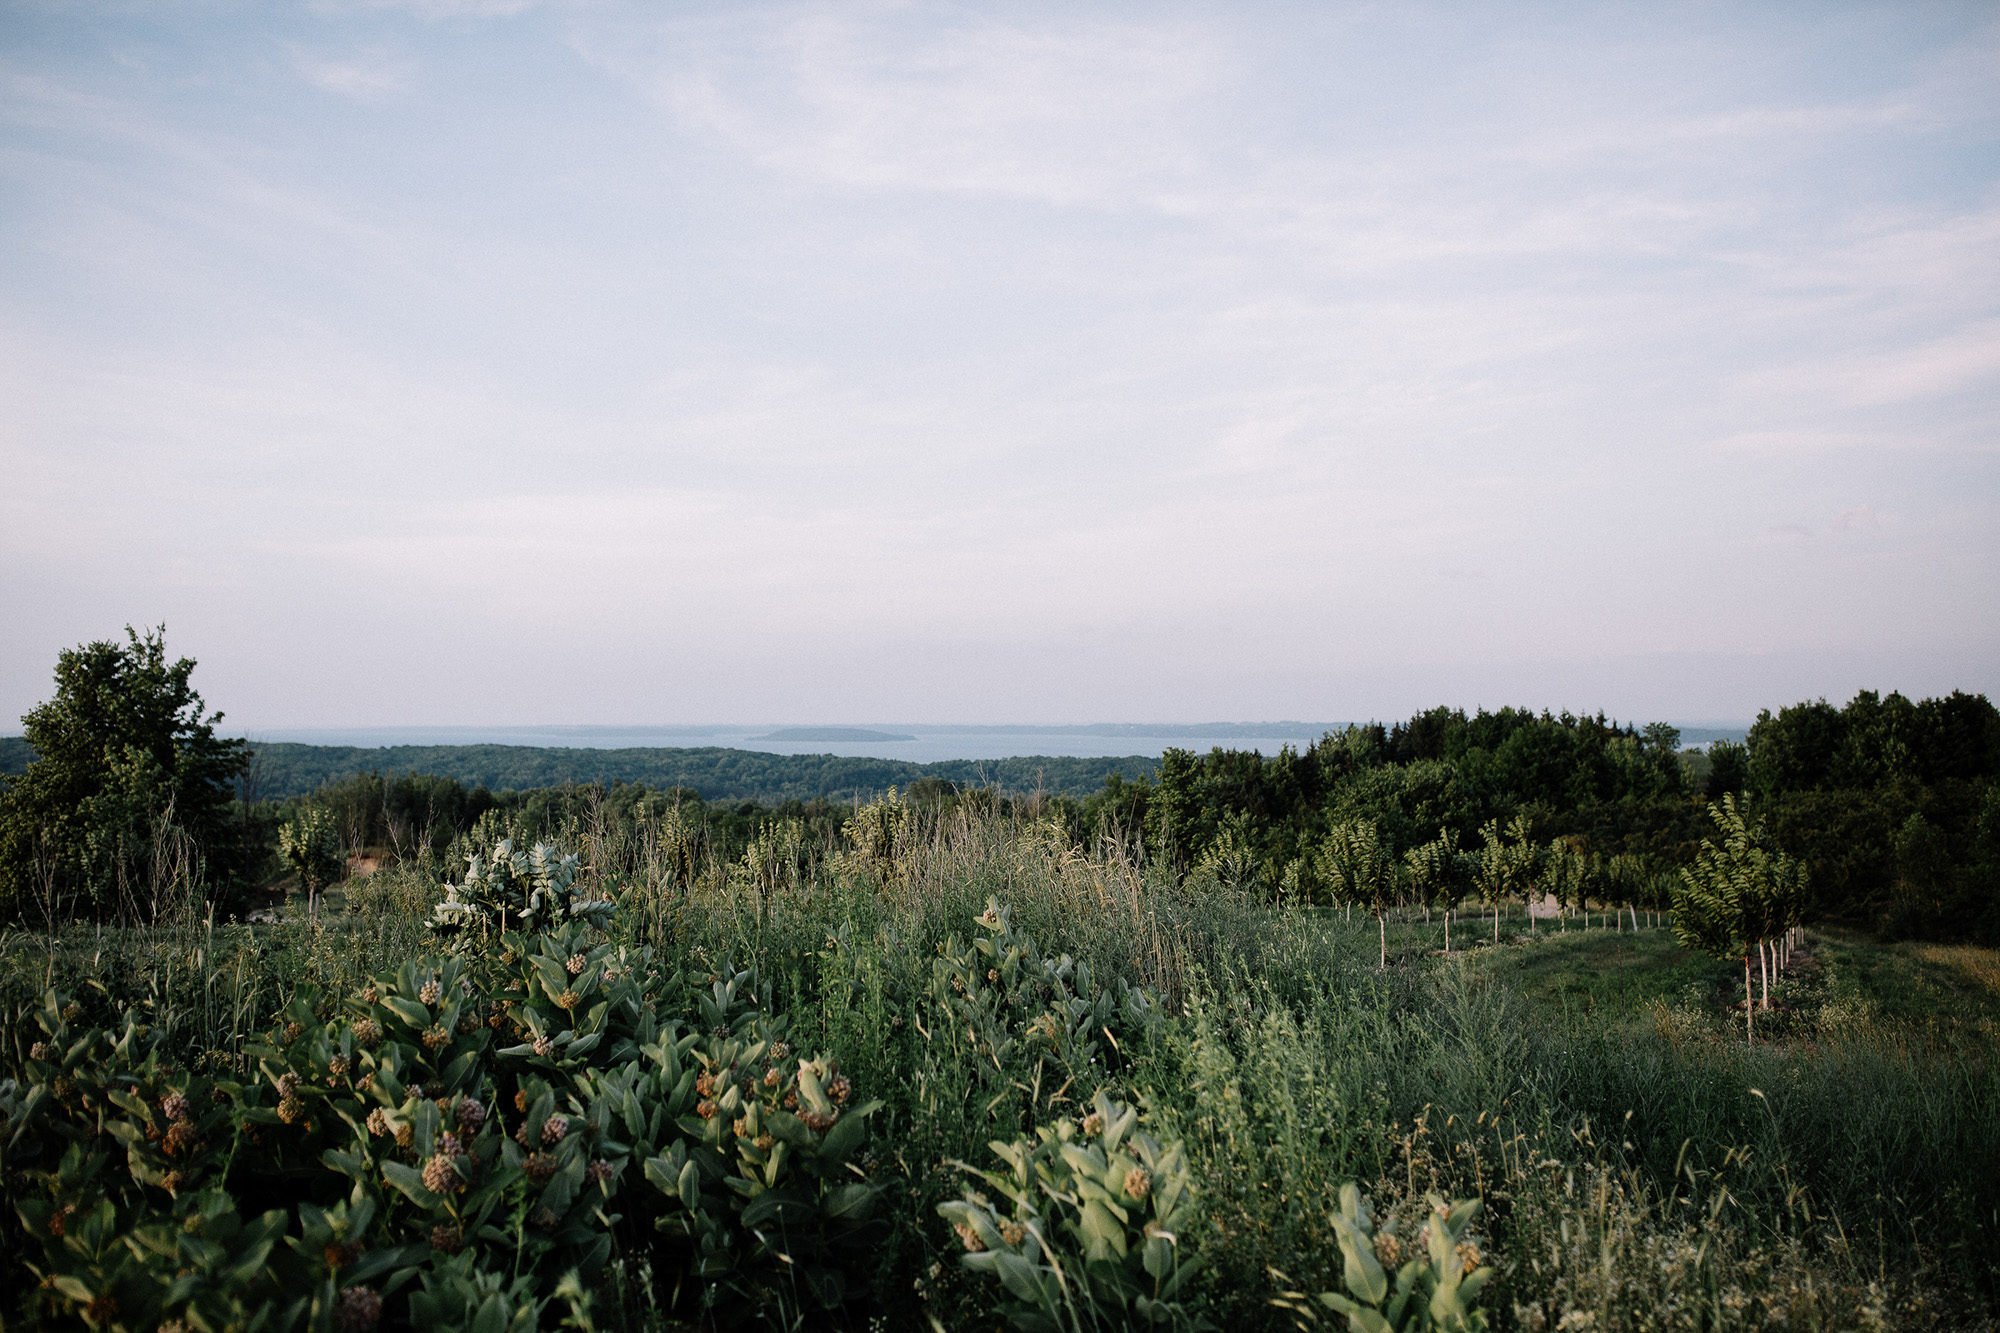 Bay View Weddings View of Grand Traverse Bay